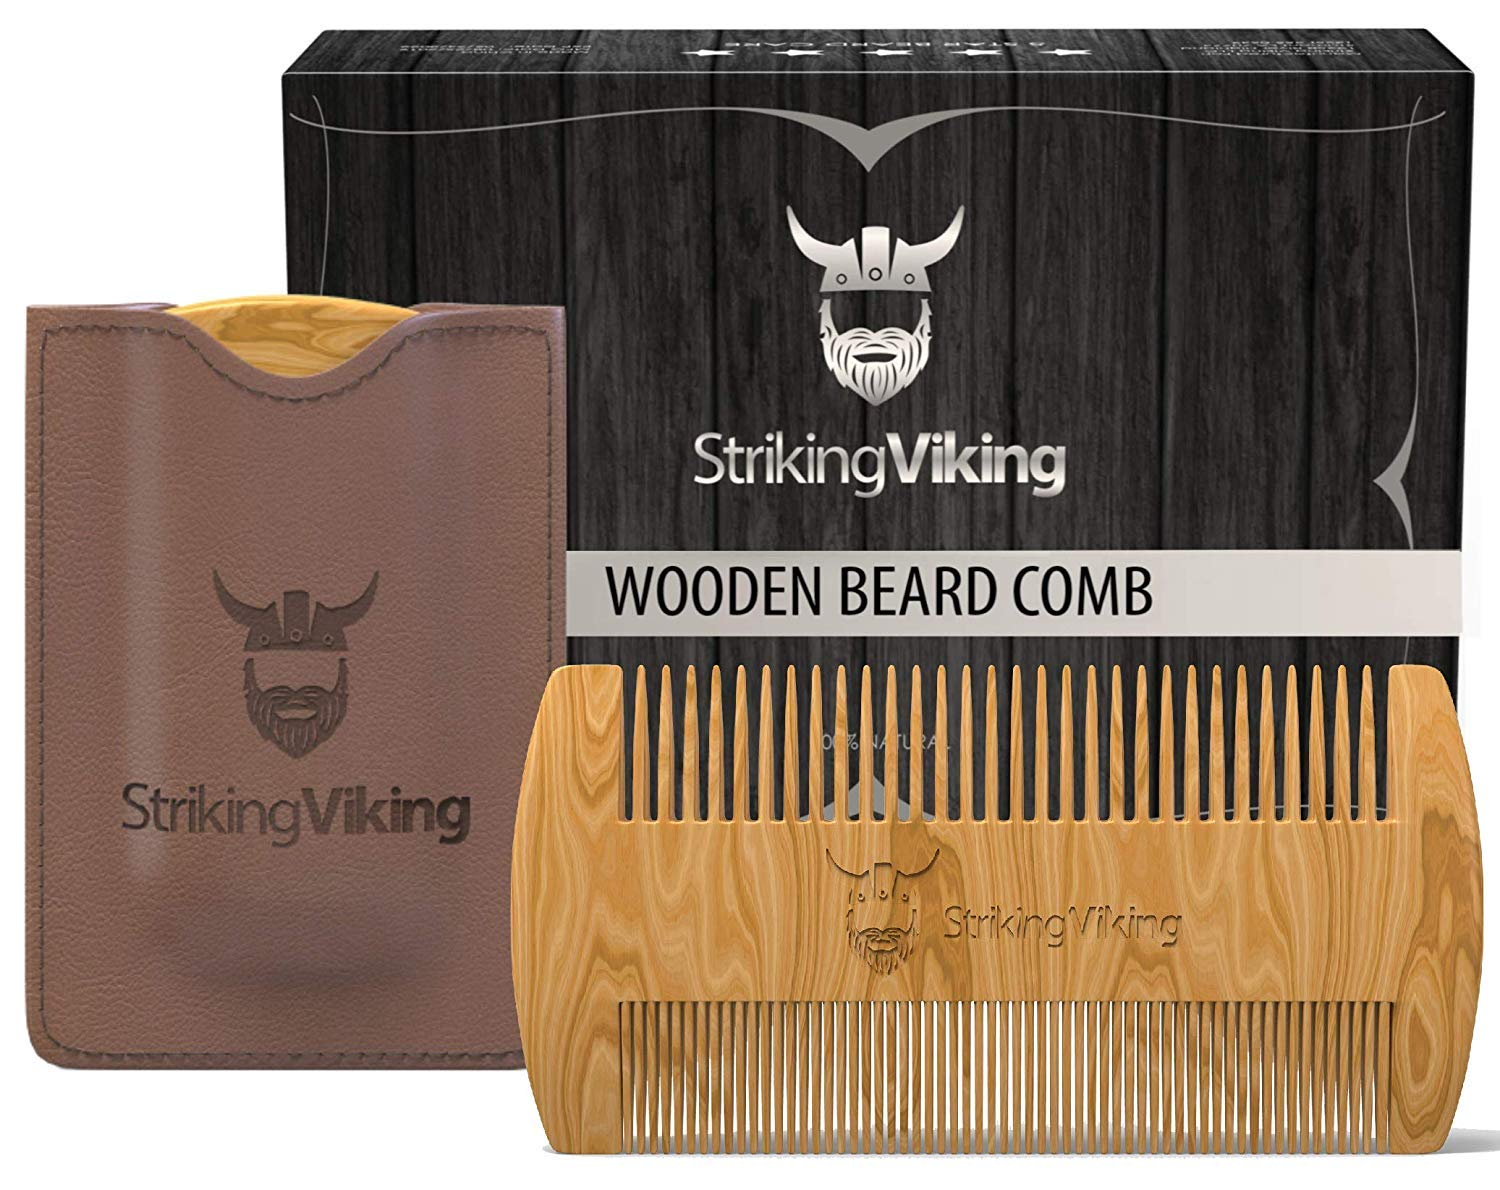 Striking Viking Wooden Beard Comb & Carry Case - Premium Sandalwood Beard Comb with Dual Sided Fine & Coarse Teeth - Pocket Sized & Anti-Static Real Wood Comb for Every Day Use